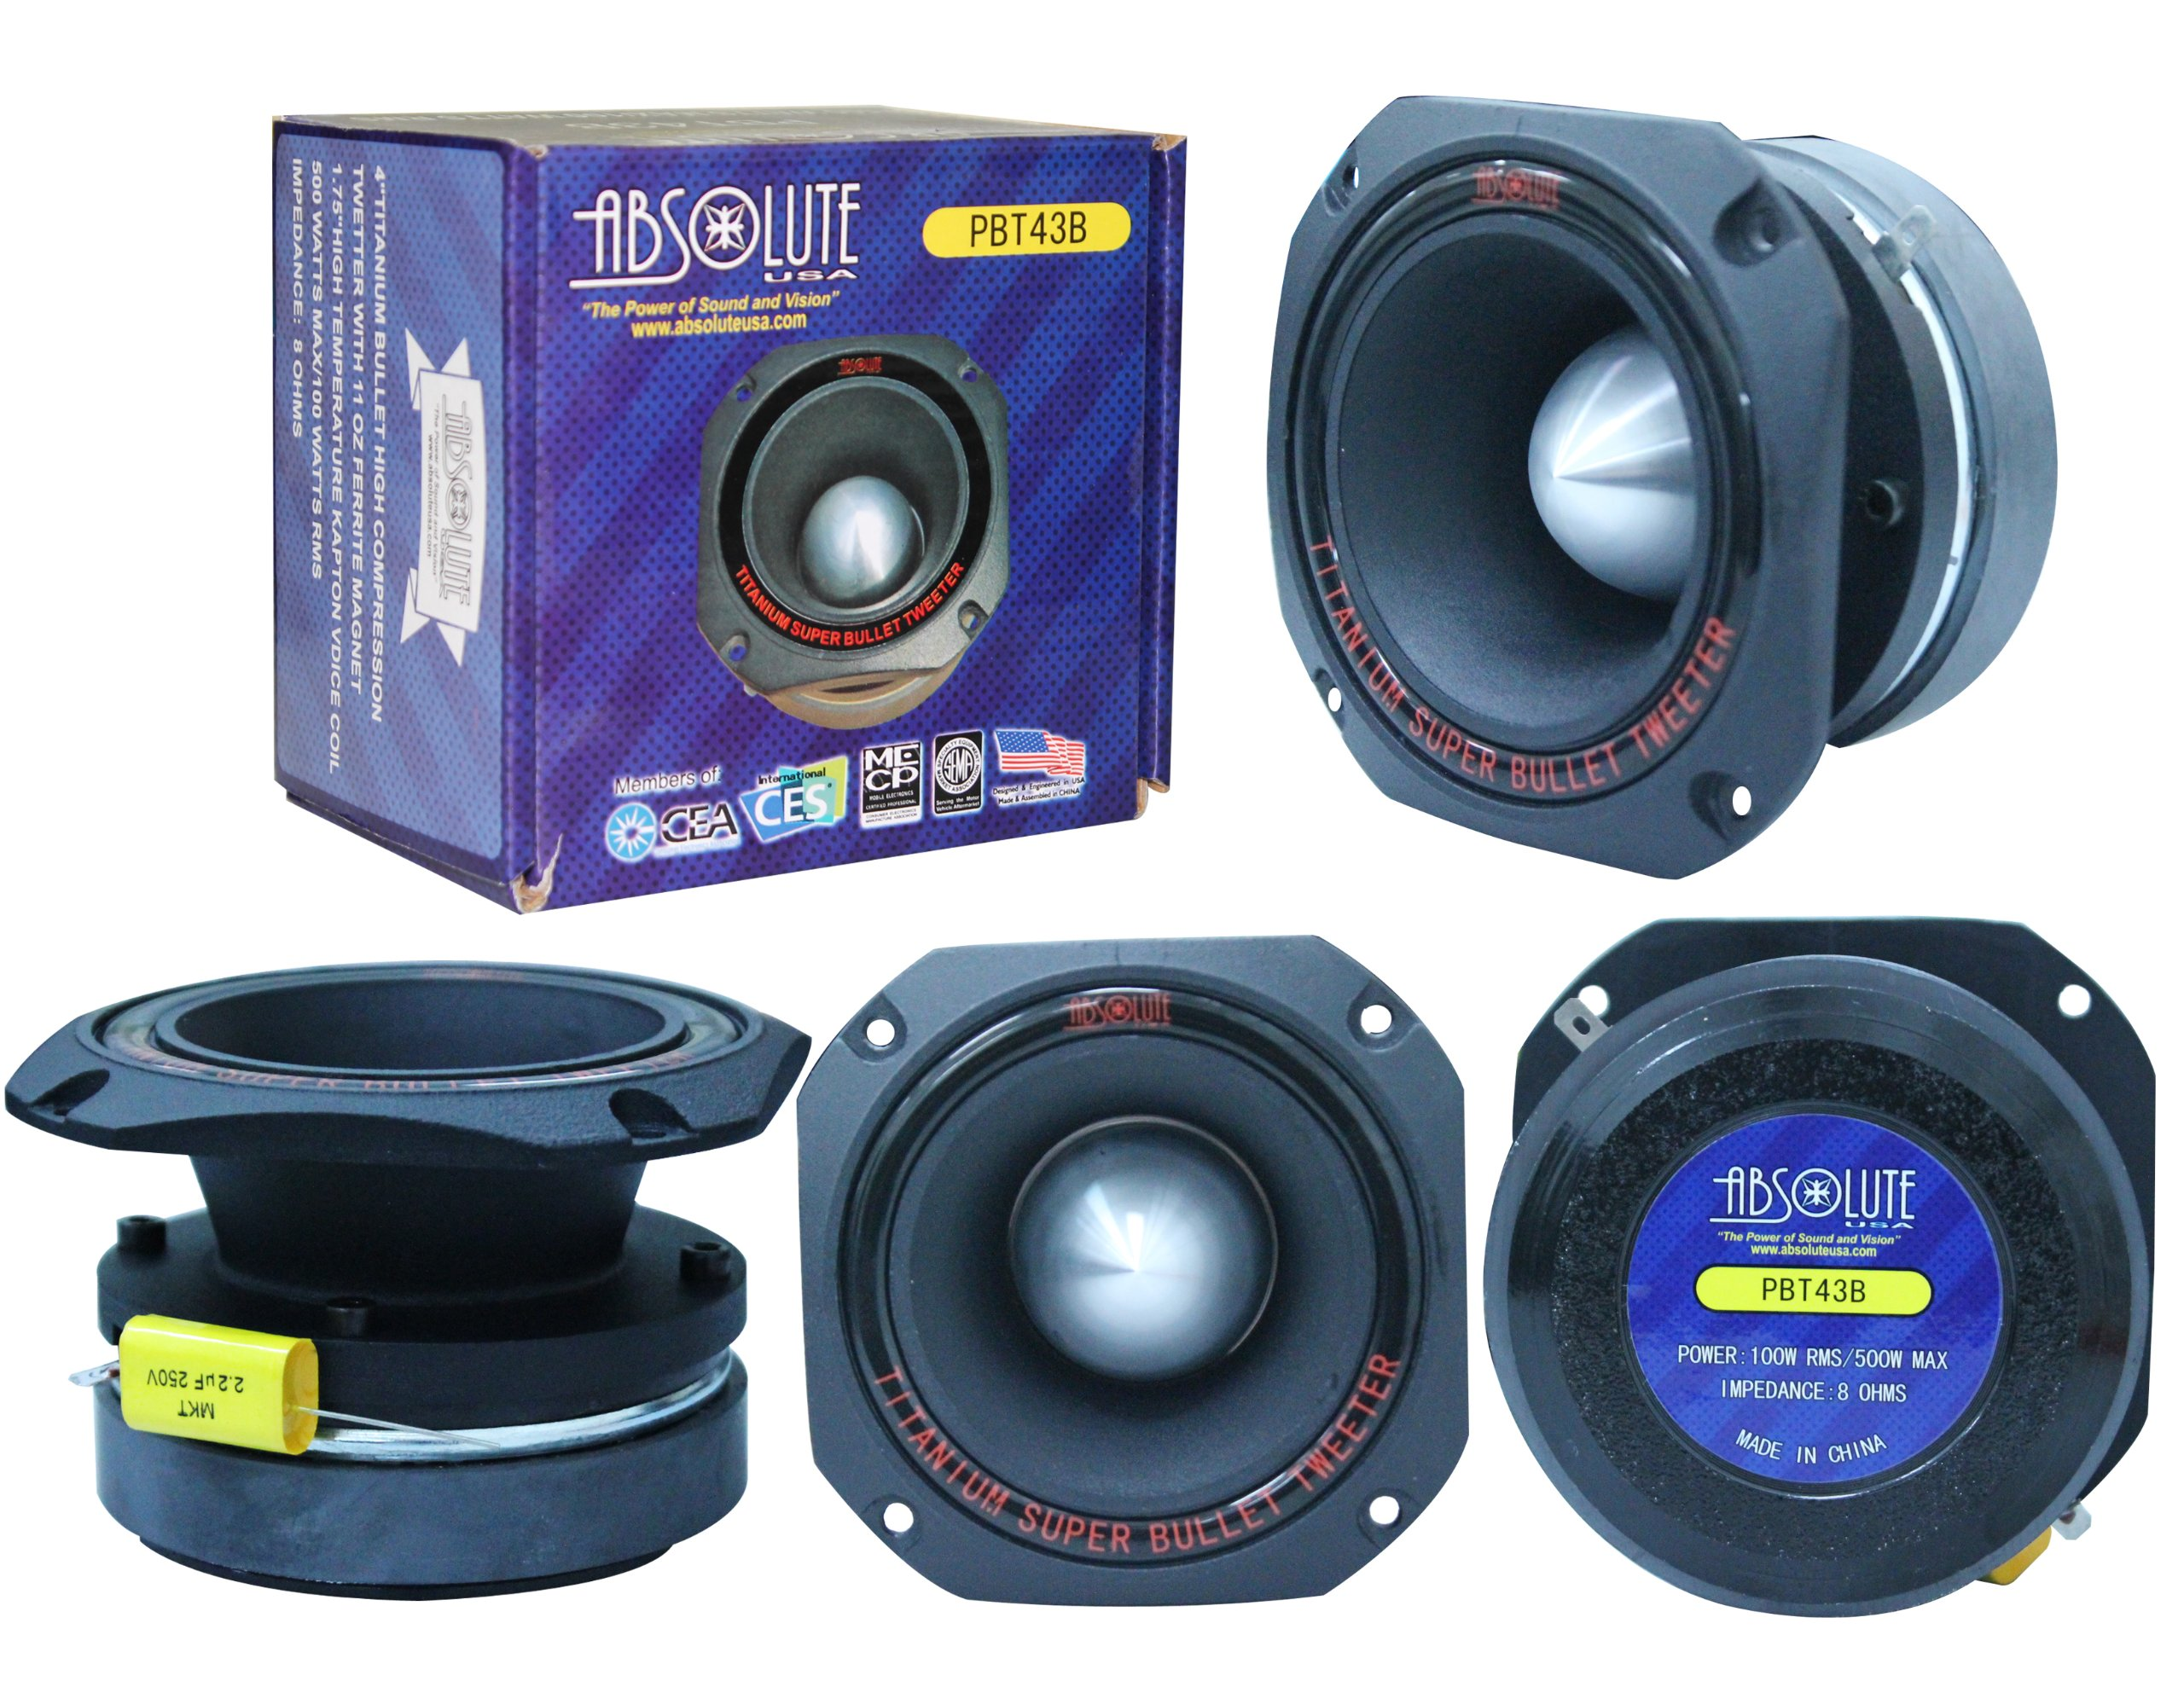 Absolute USA PBT43B 4-Inch Titanium Bullet High Compression Tweeter with 11 Oz Ferrite Magnet